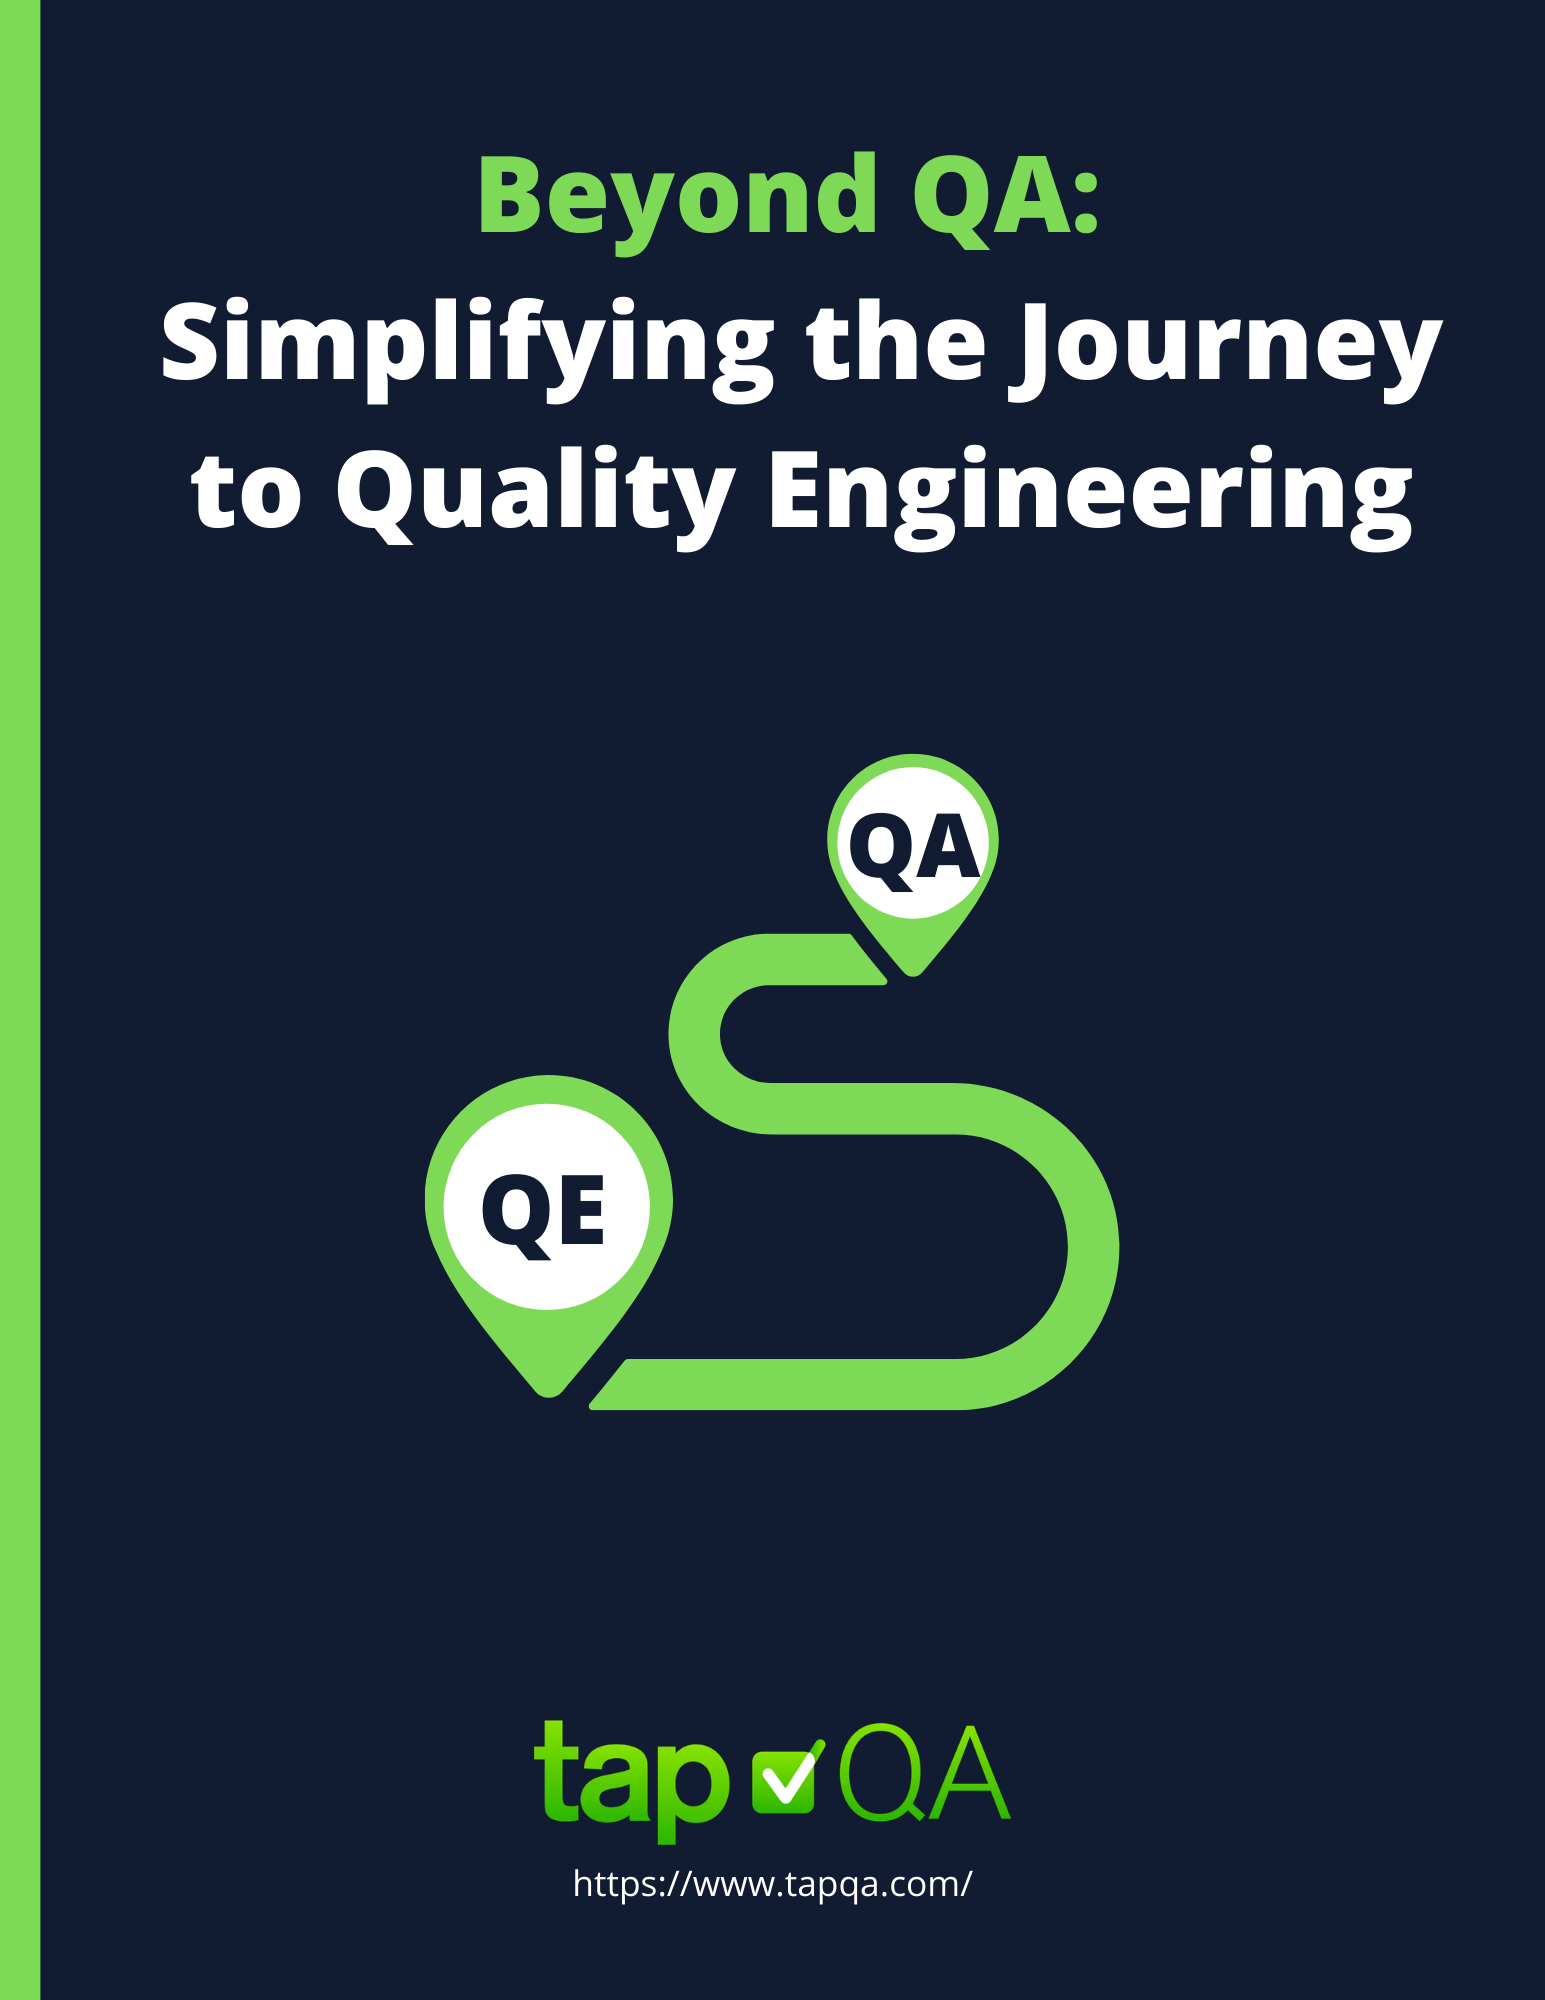 Simplifying the Quality Engineering Journey